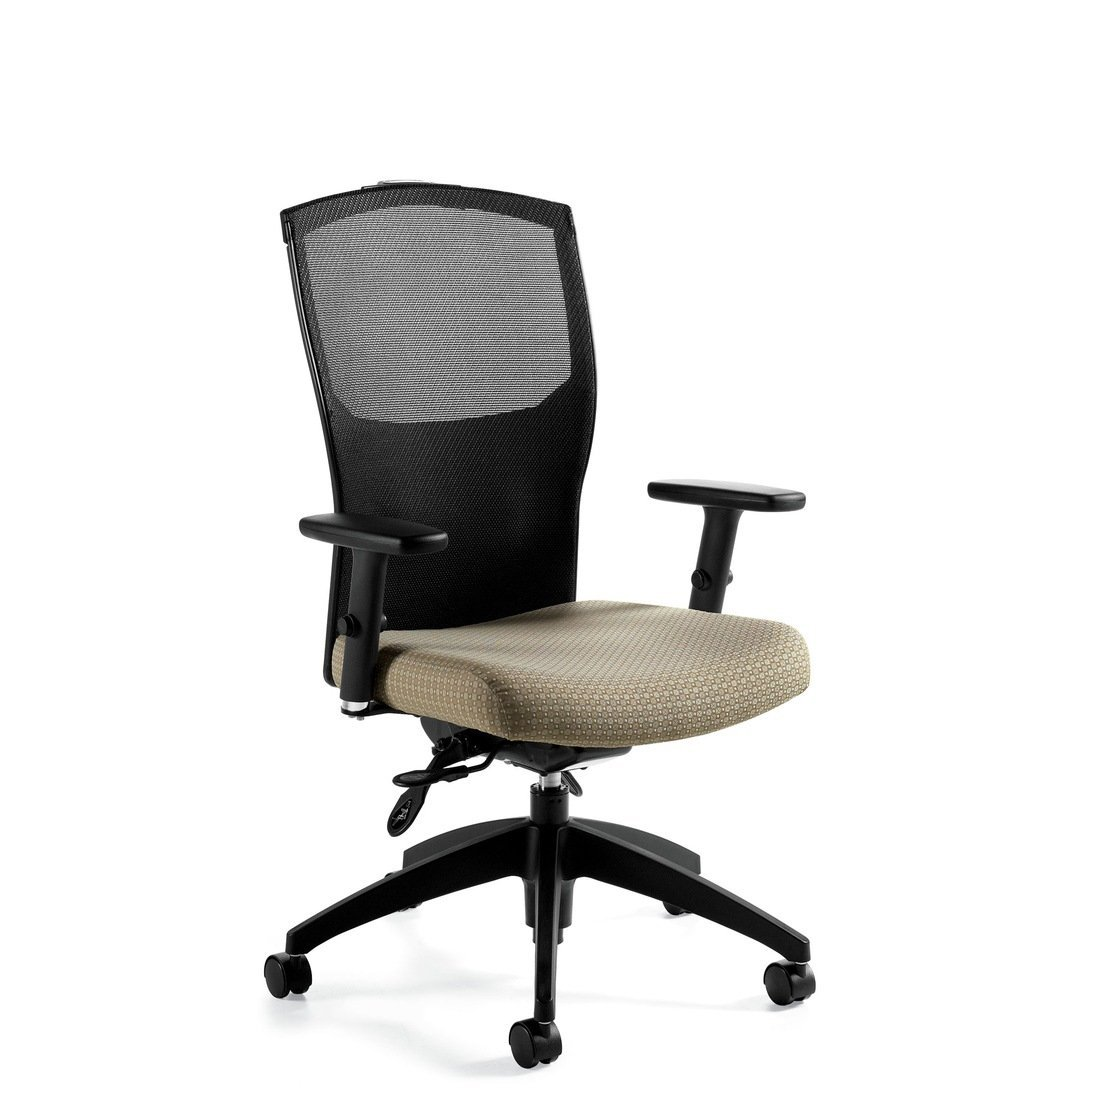 Alero high back operator chair, model 1961-5. This chair has been placed on a white background.